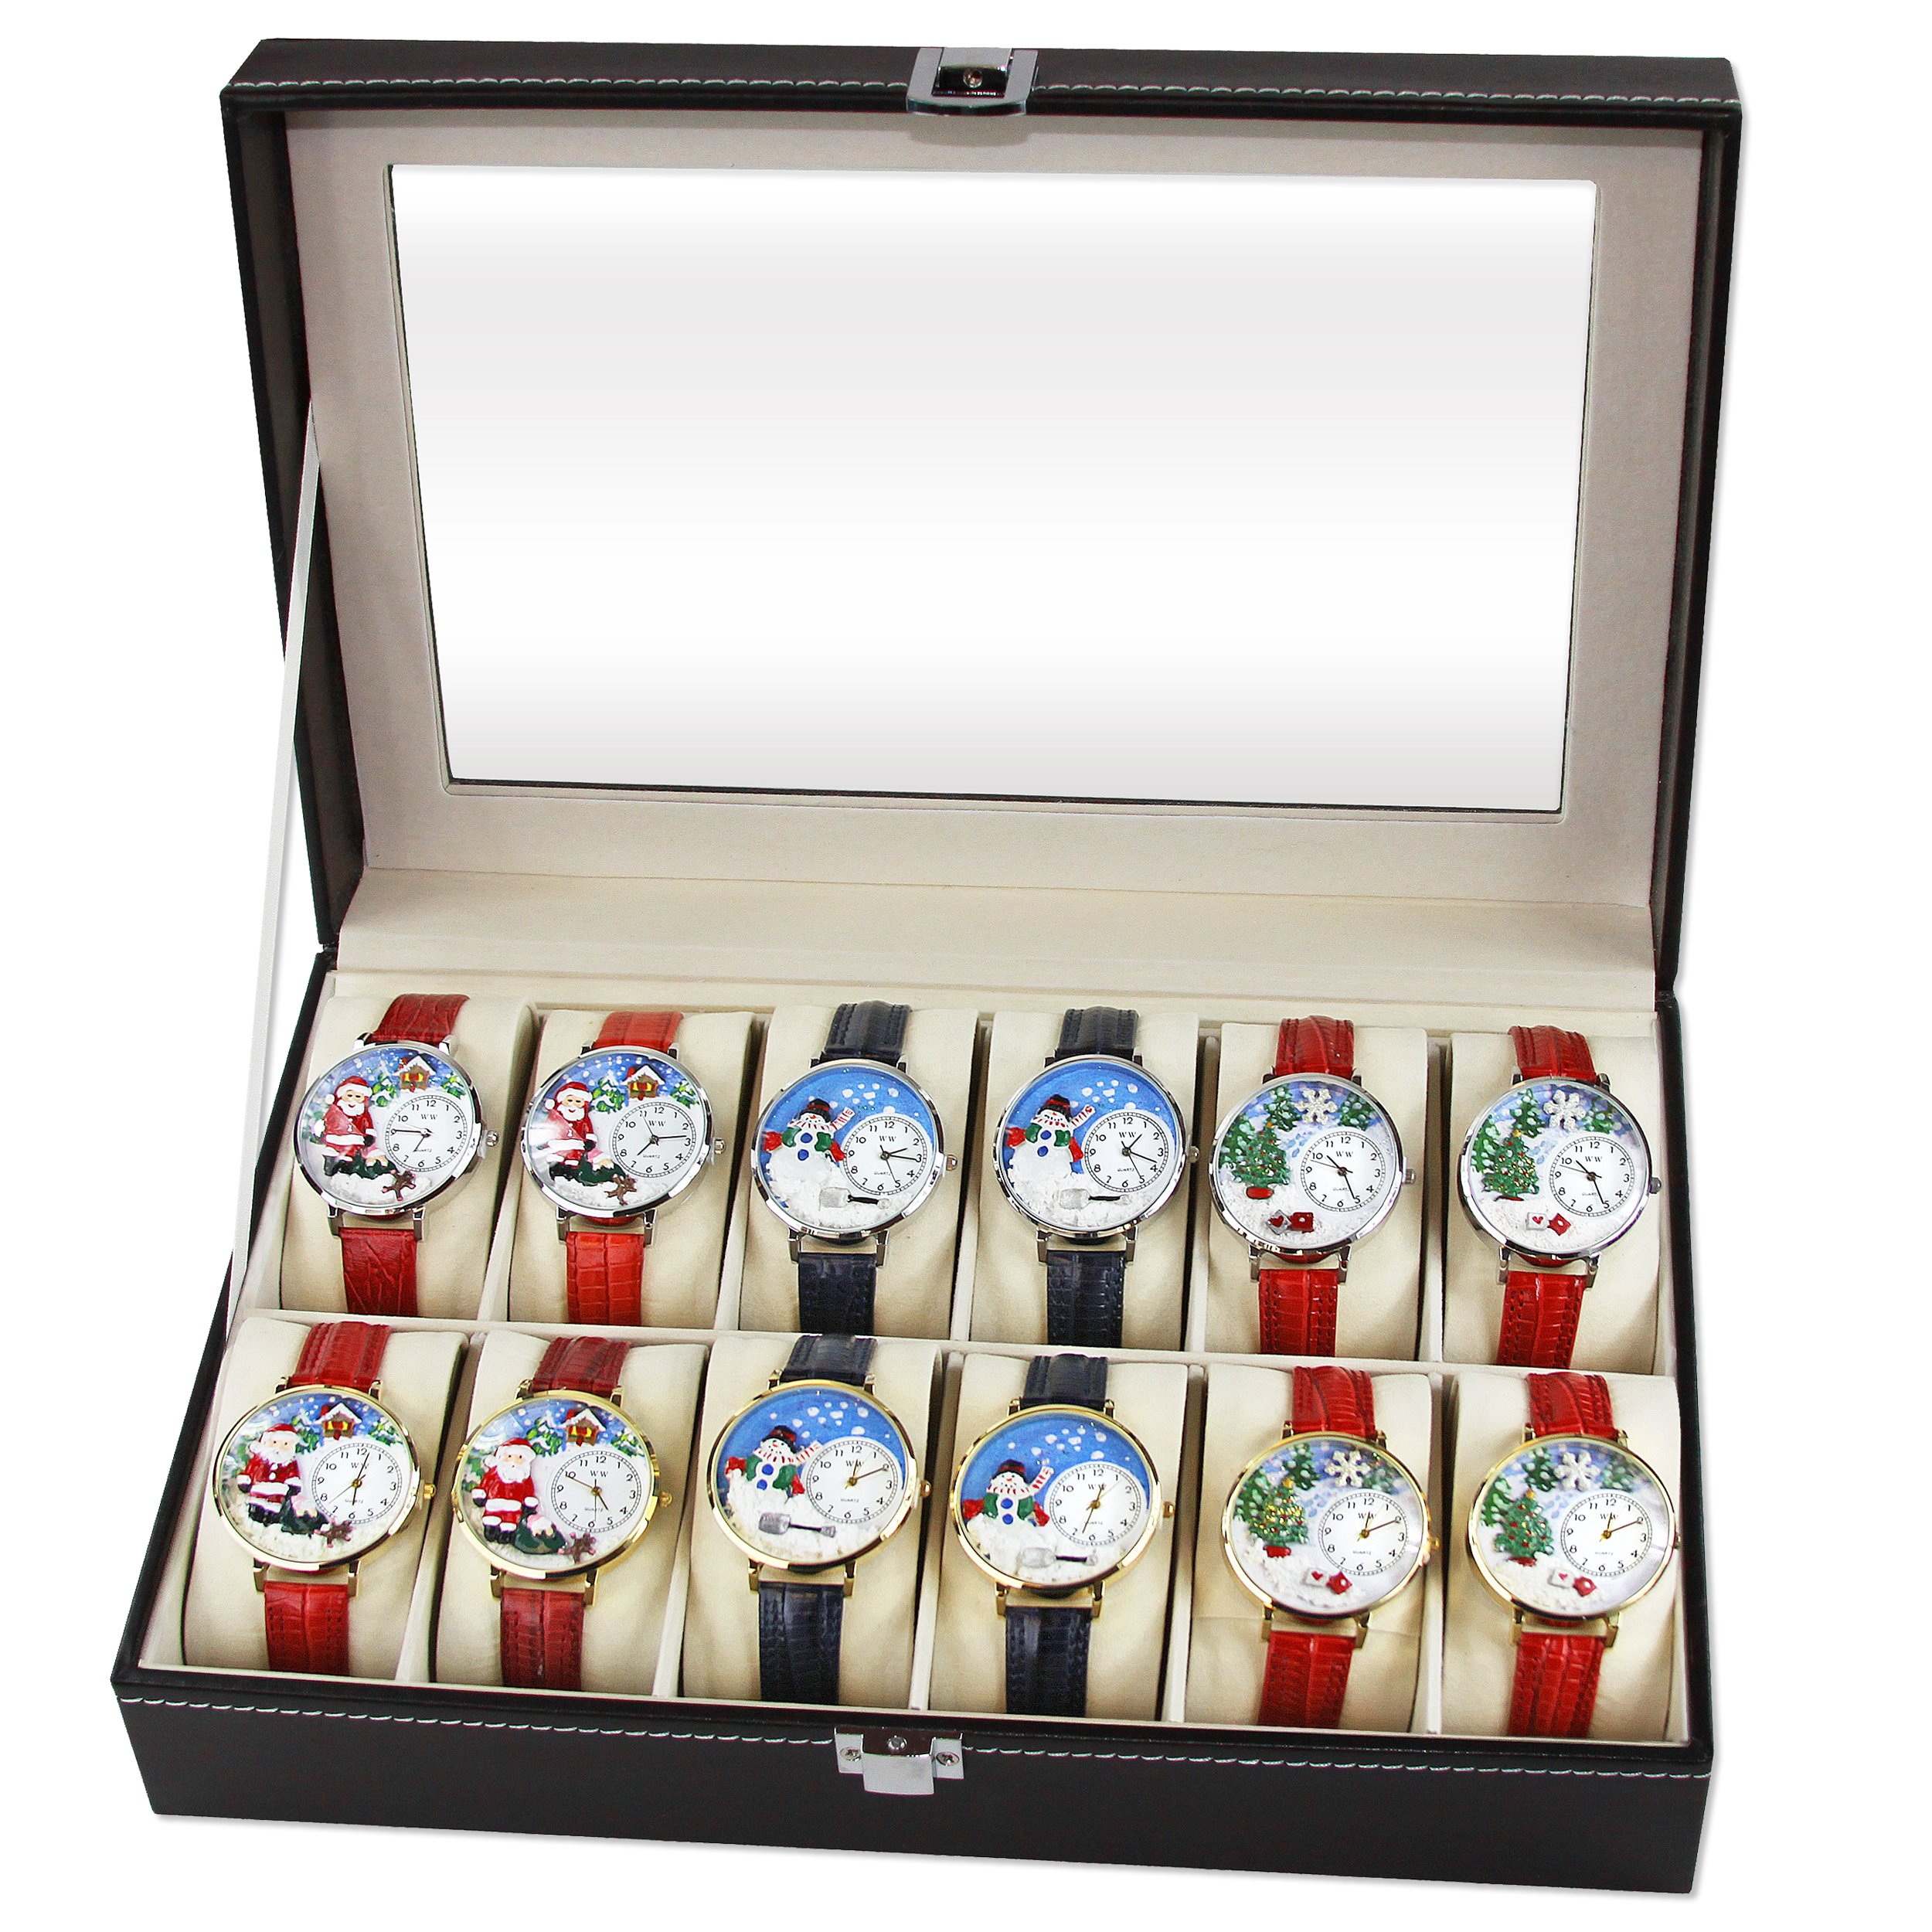 Whimsical Christmas Watch 12ct Display (6 Gold; 6 Silver)